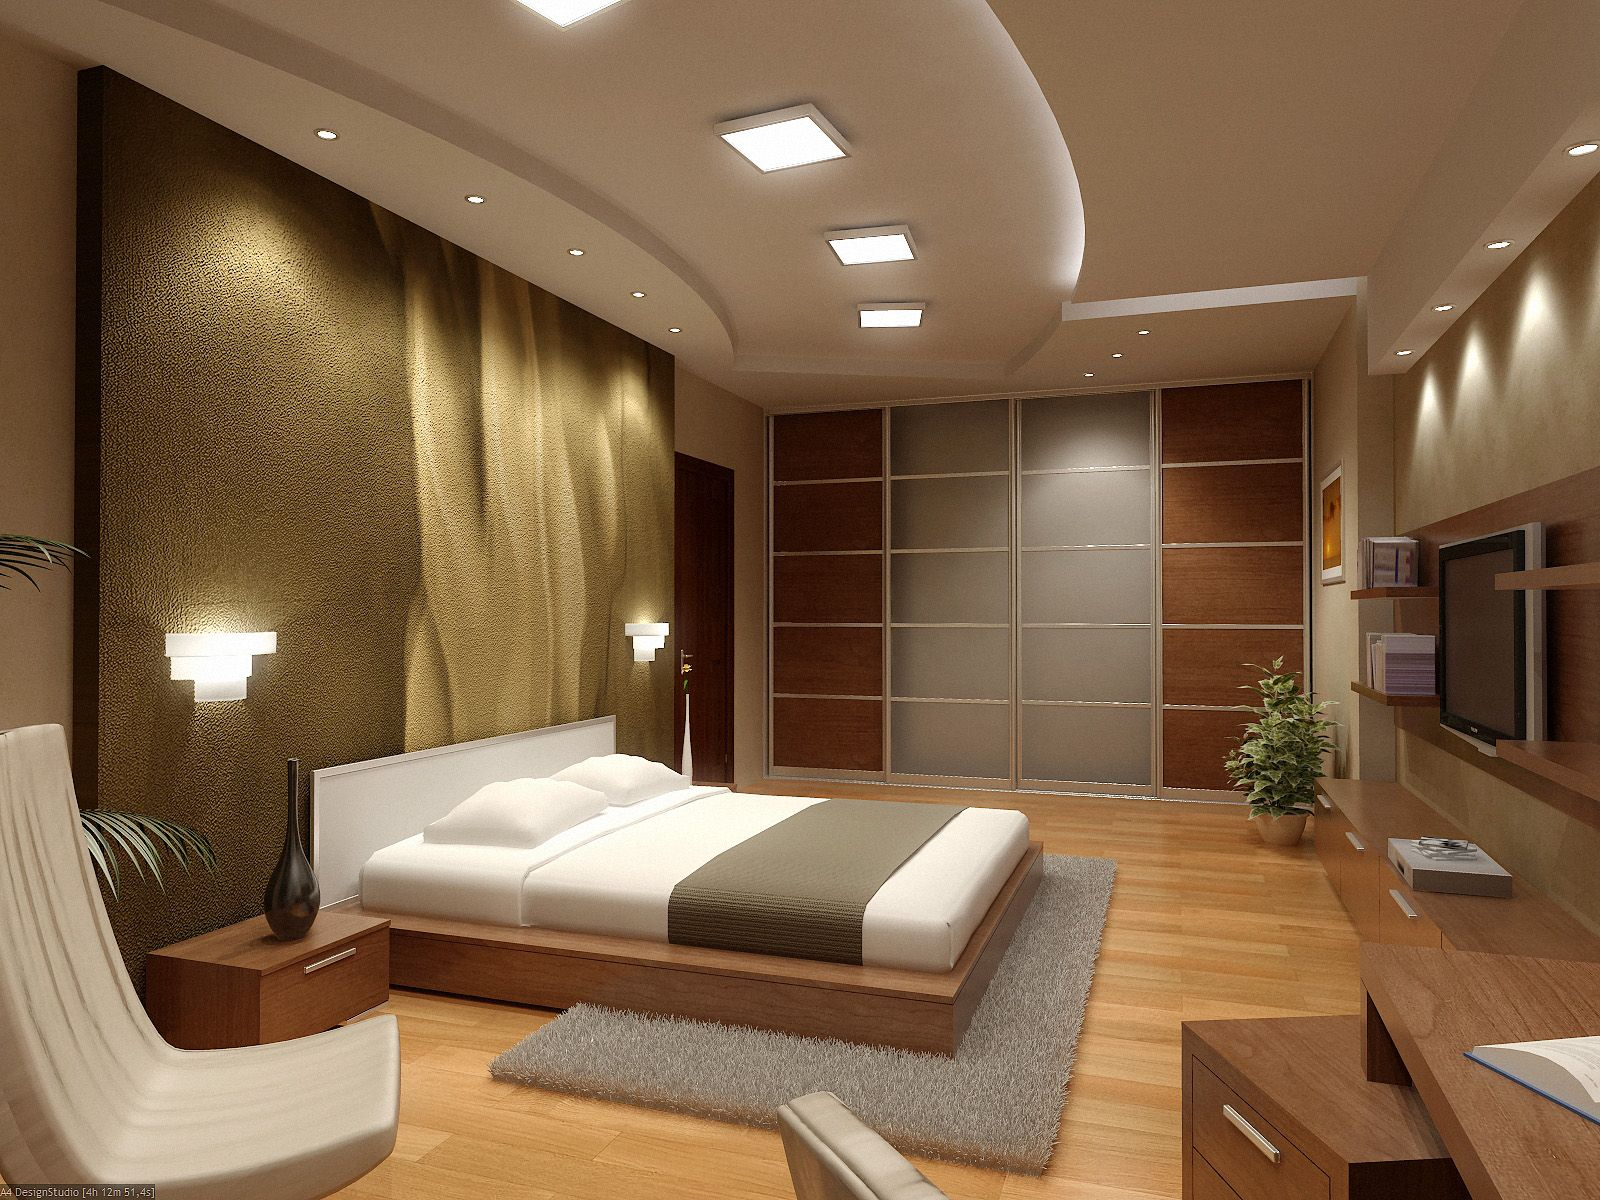 New home designs latest modern homes luxury interior for Expensive bedroom ideas